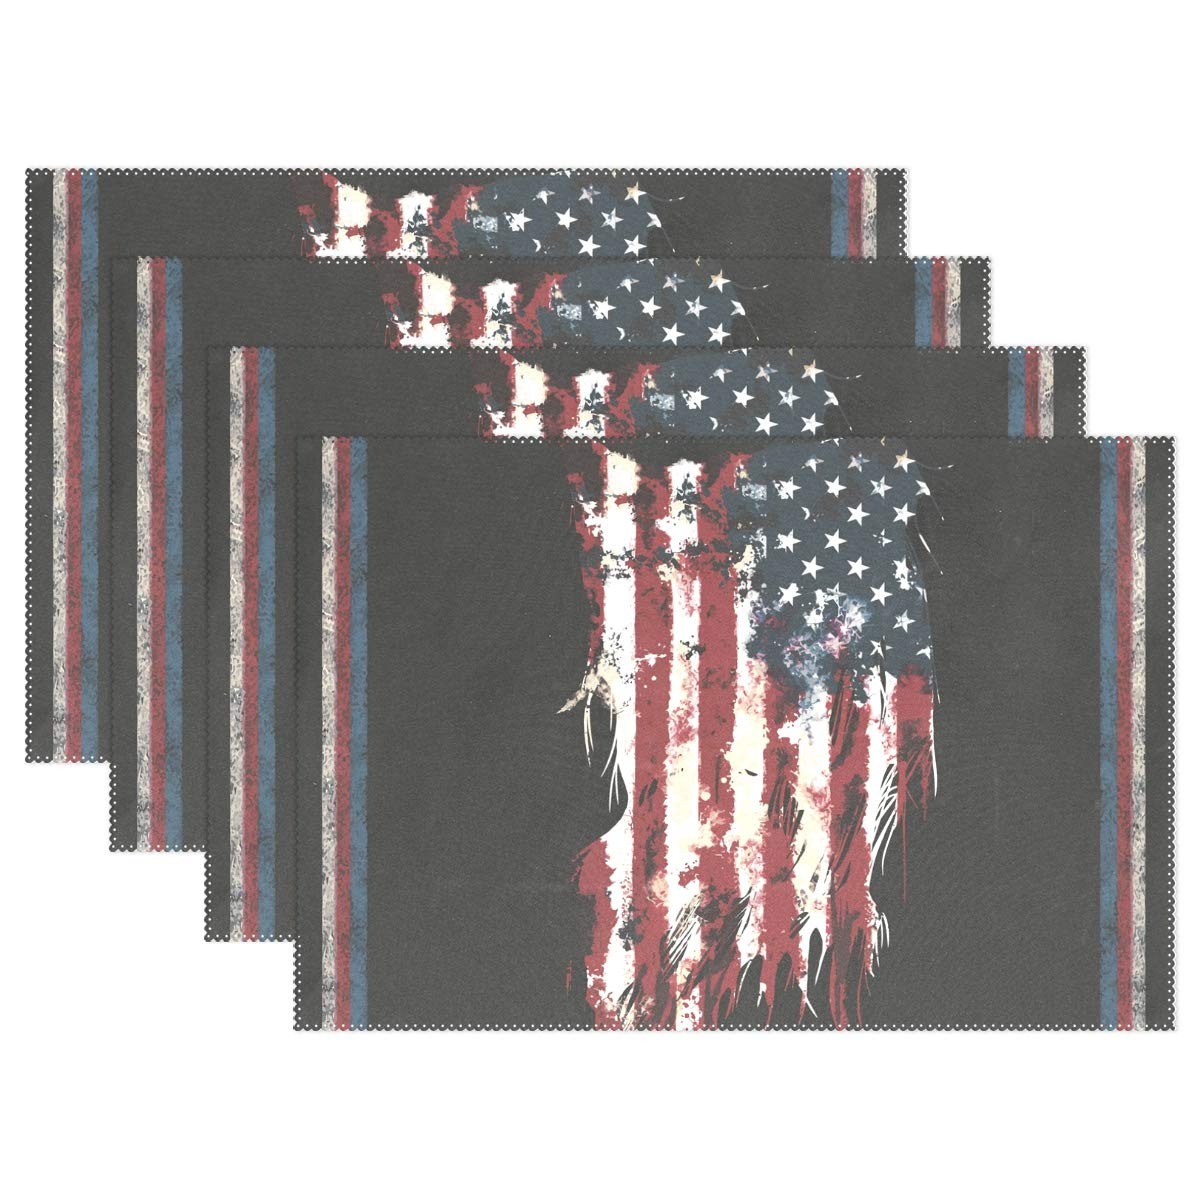 baihuishop America Flag Placemats Heat-Resistant Washable Table Mats 12 X 18 Inch Placemats for Family Kitchen Hotel Coffee Shop Dinning Restaurant Set of 6